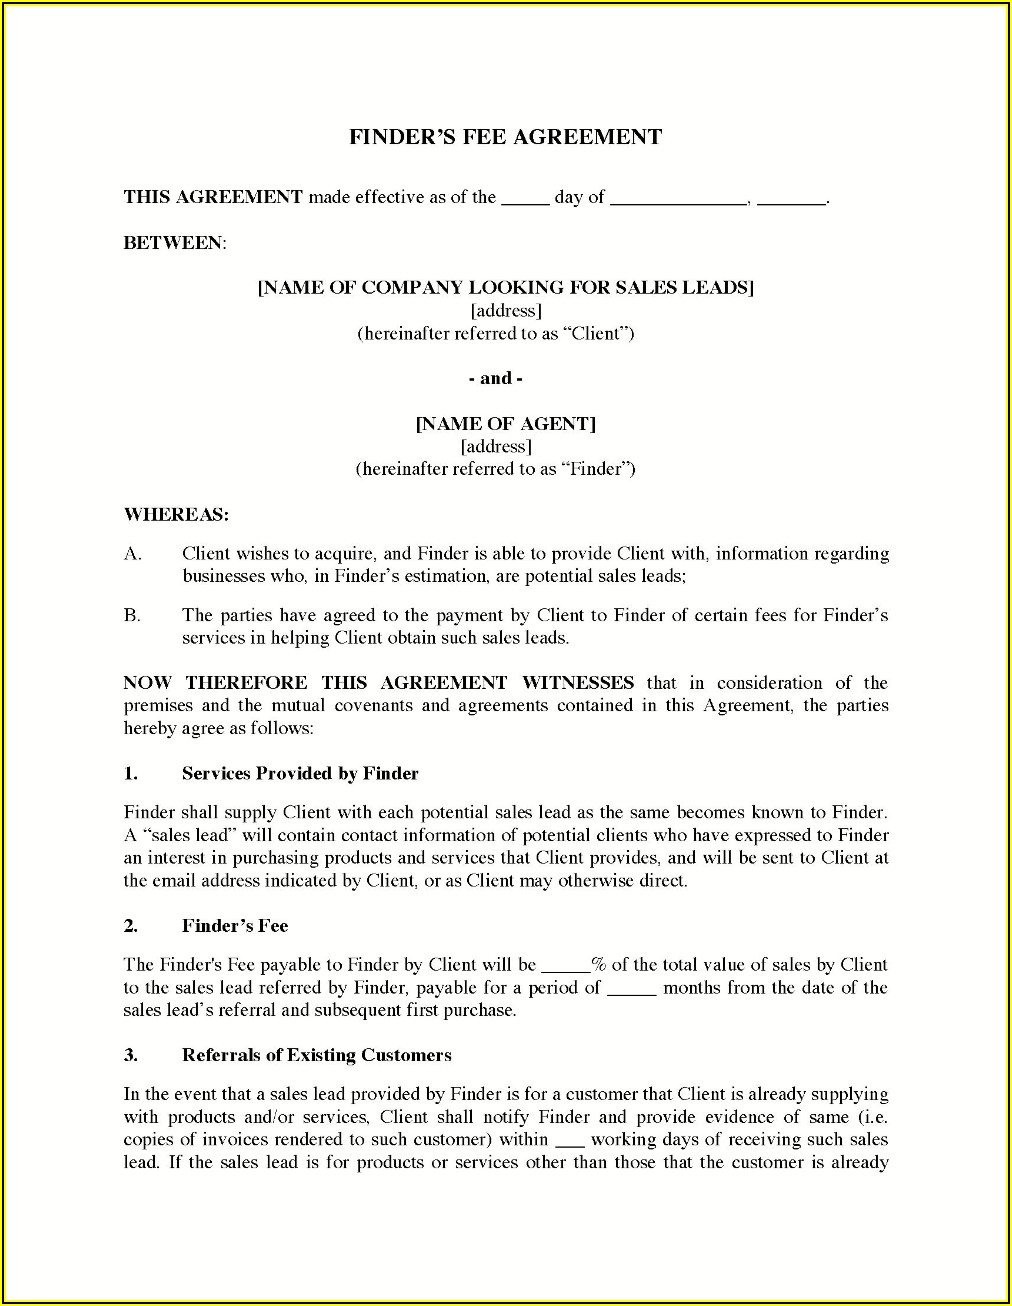 Finder's Fee Commission Agreement Template